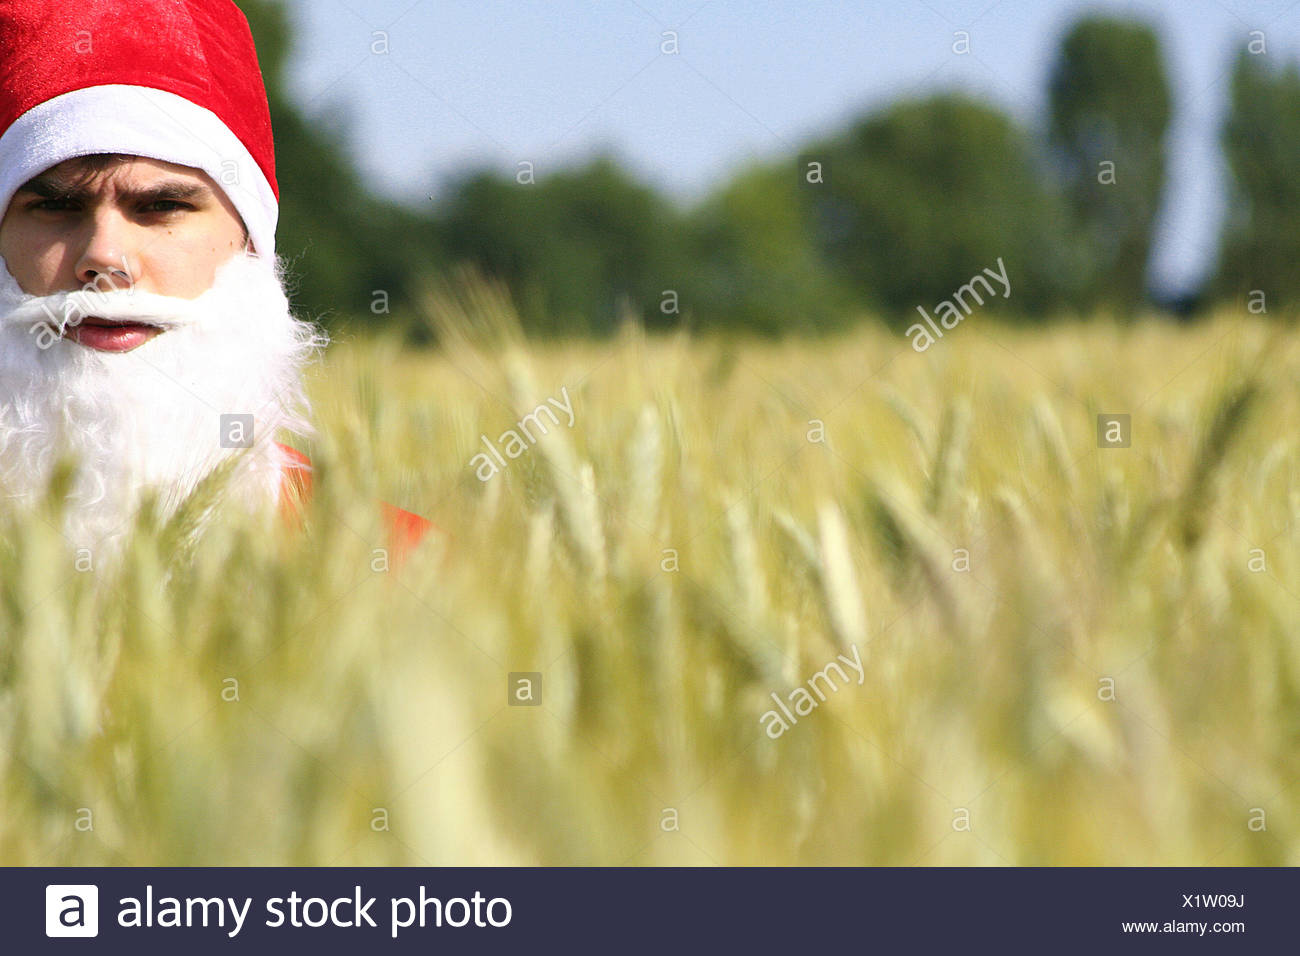 contrasts,santa clause,global warming - Stock Image